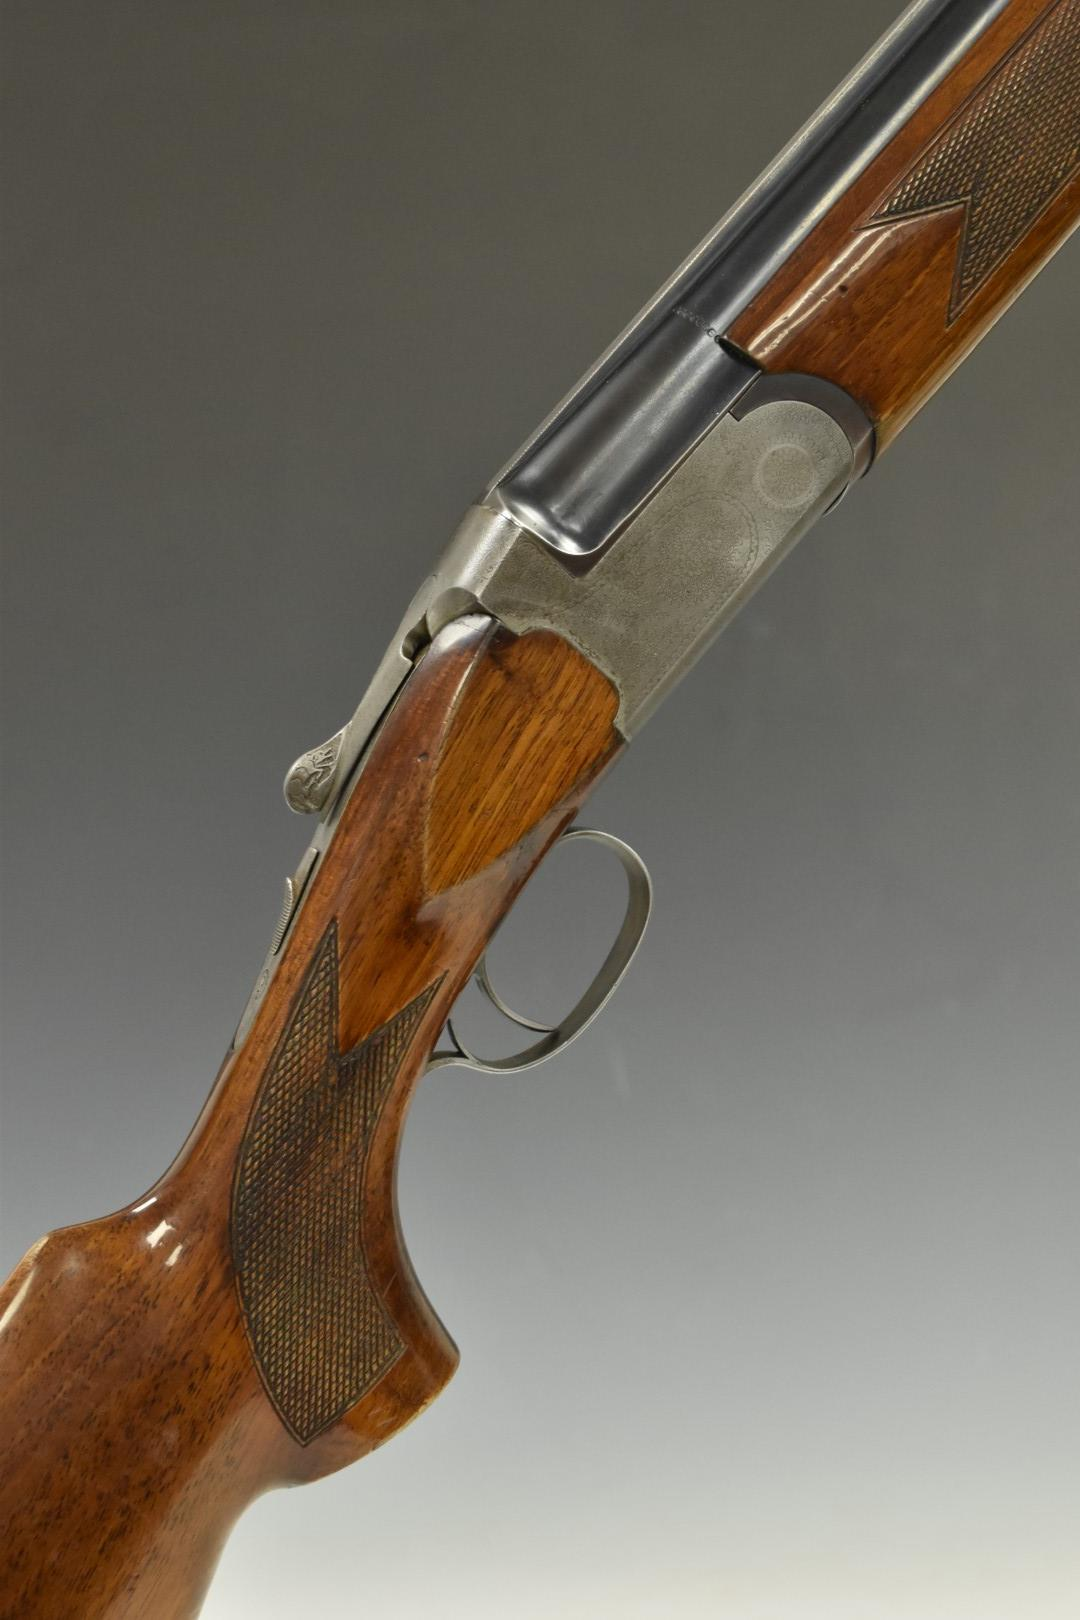 Sportarmi 12 bore over and under shotgun with engraved locks, underside, top plate and thumb